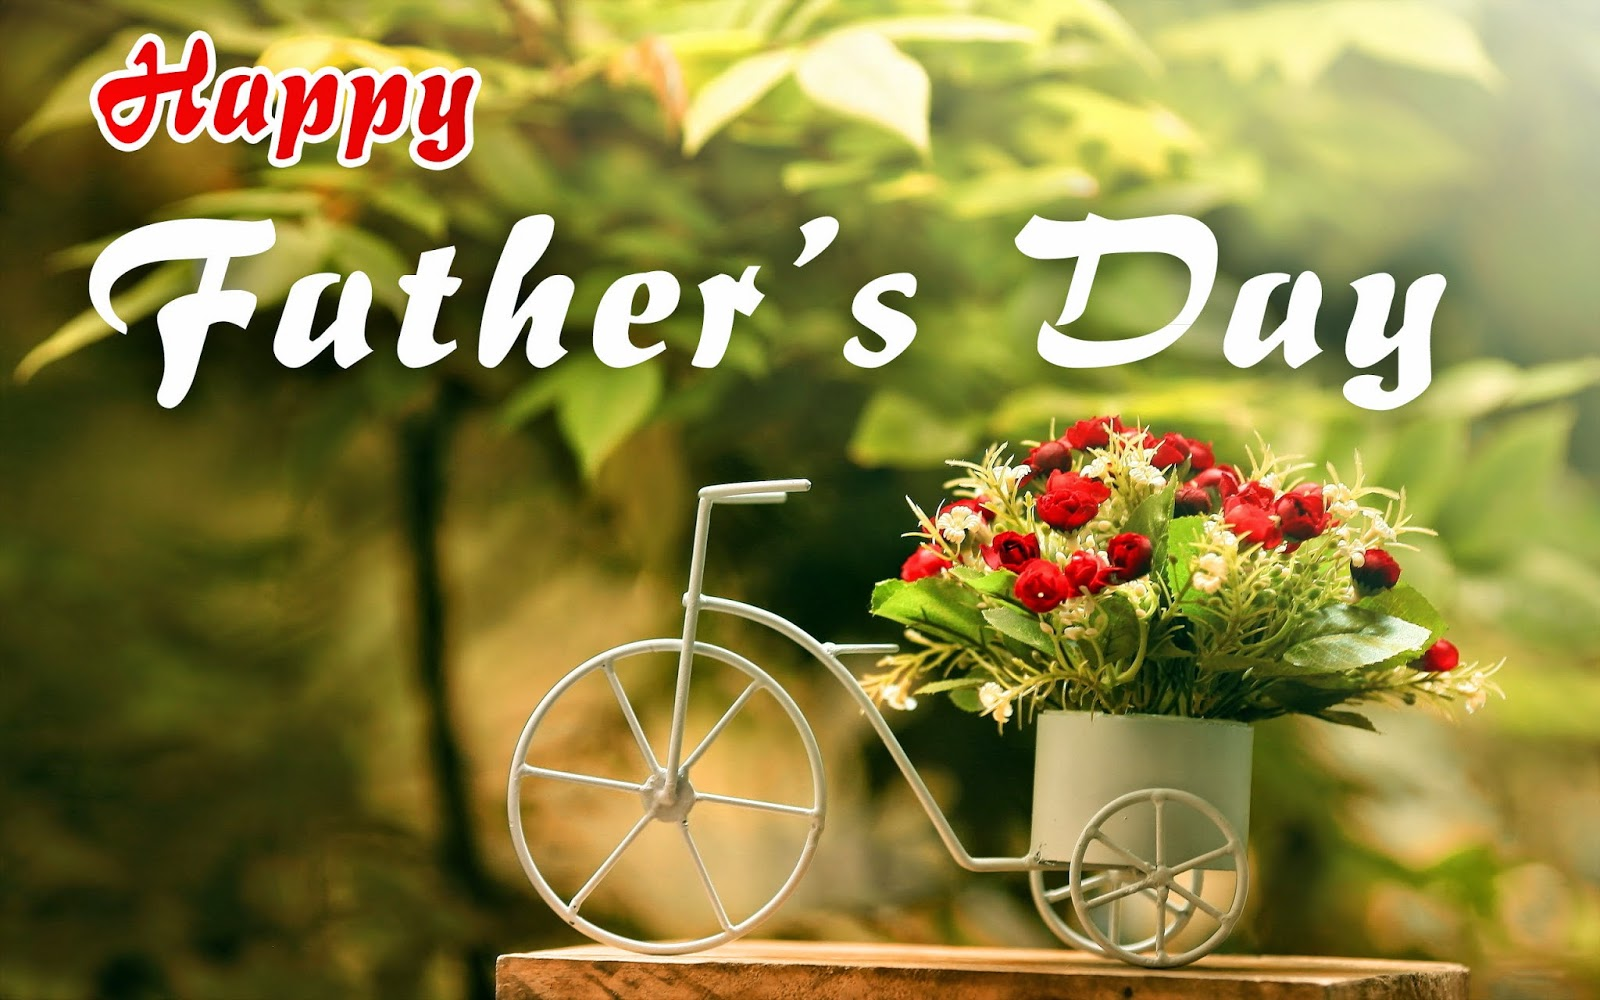 Happy Fathers Day Images 2019: Fathers Day Pictures, Photos